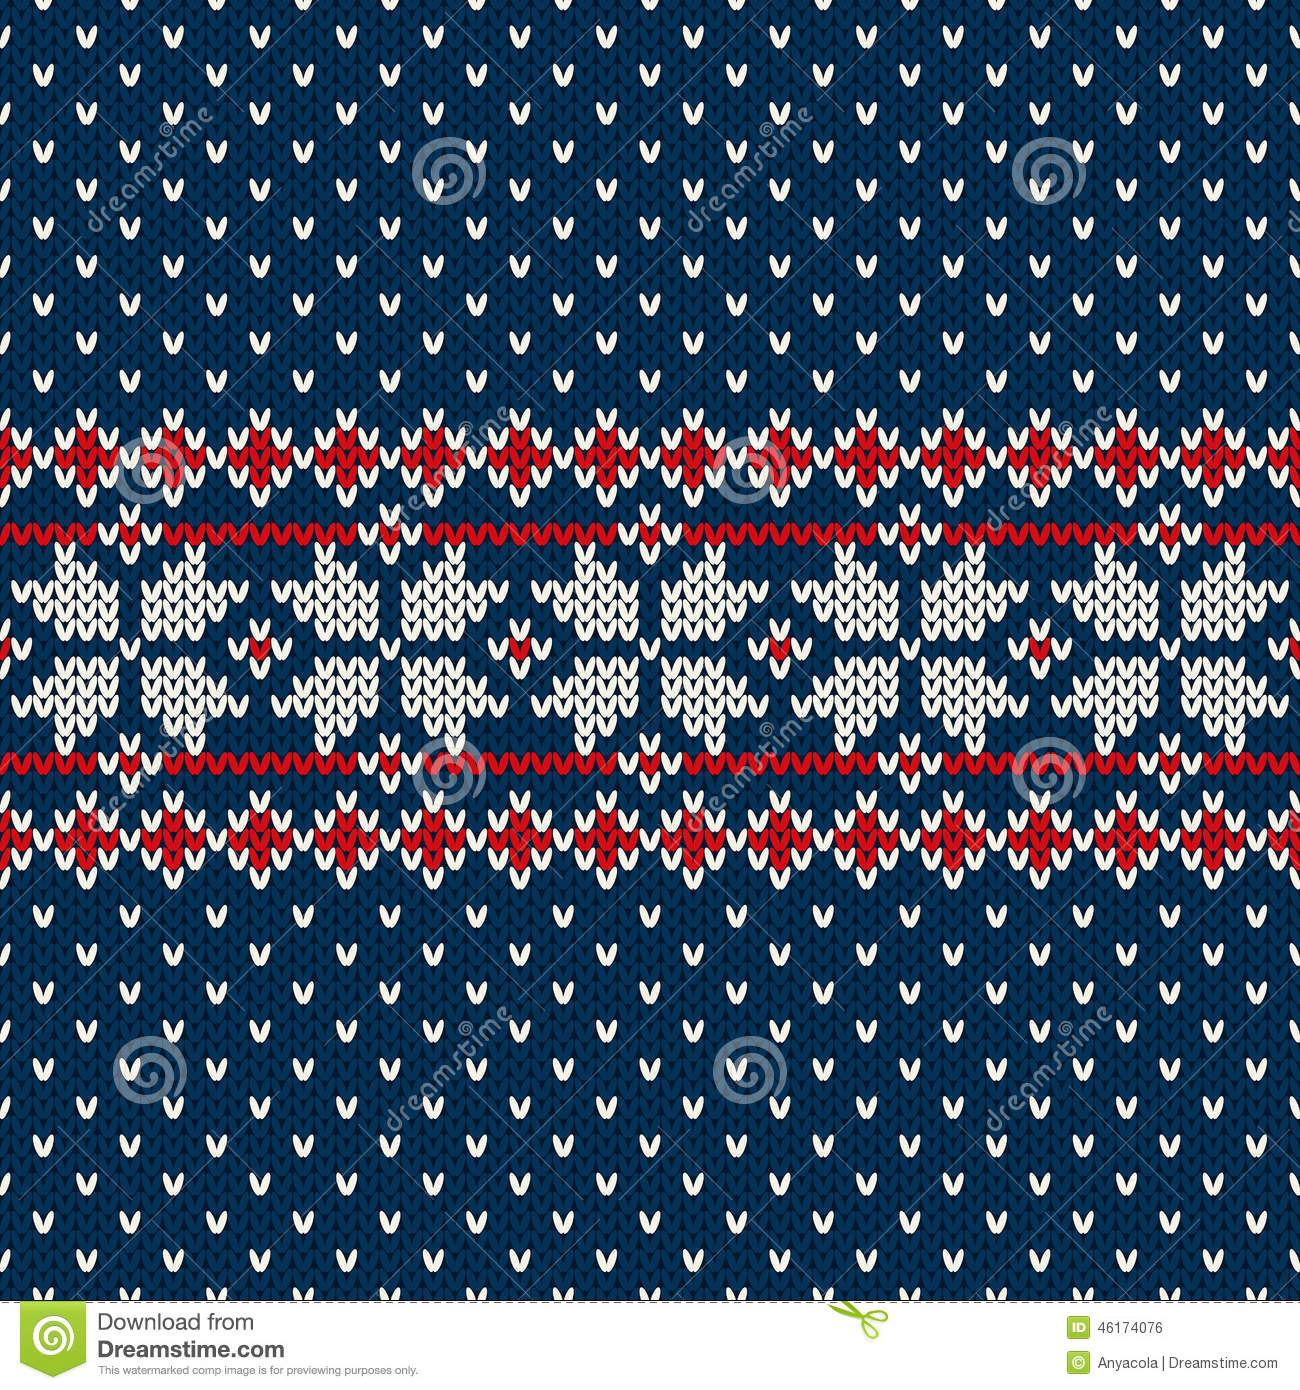 Knitting Pattern Vector Download : Winter Holiday Sweater Design On The Wool Knitted Texture ...